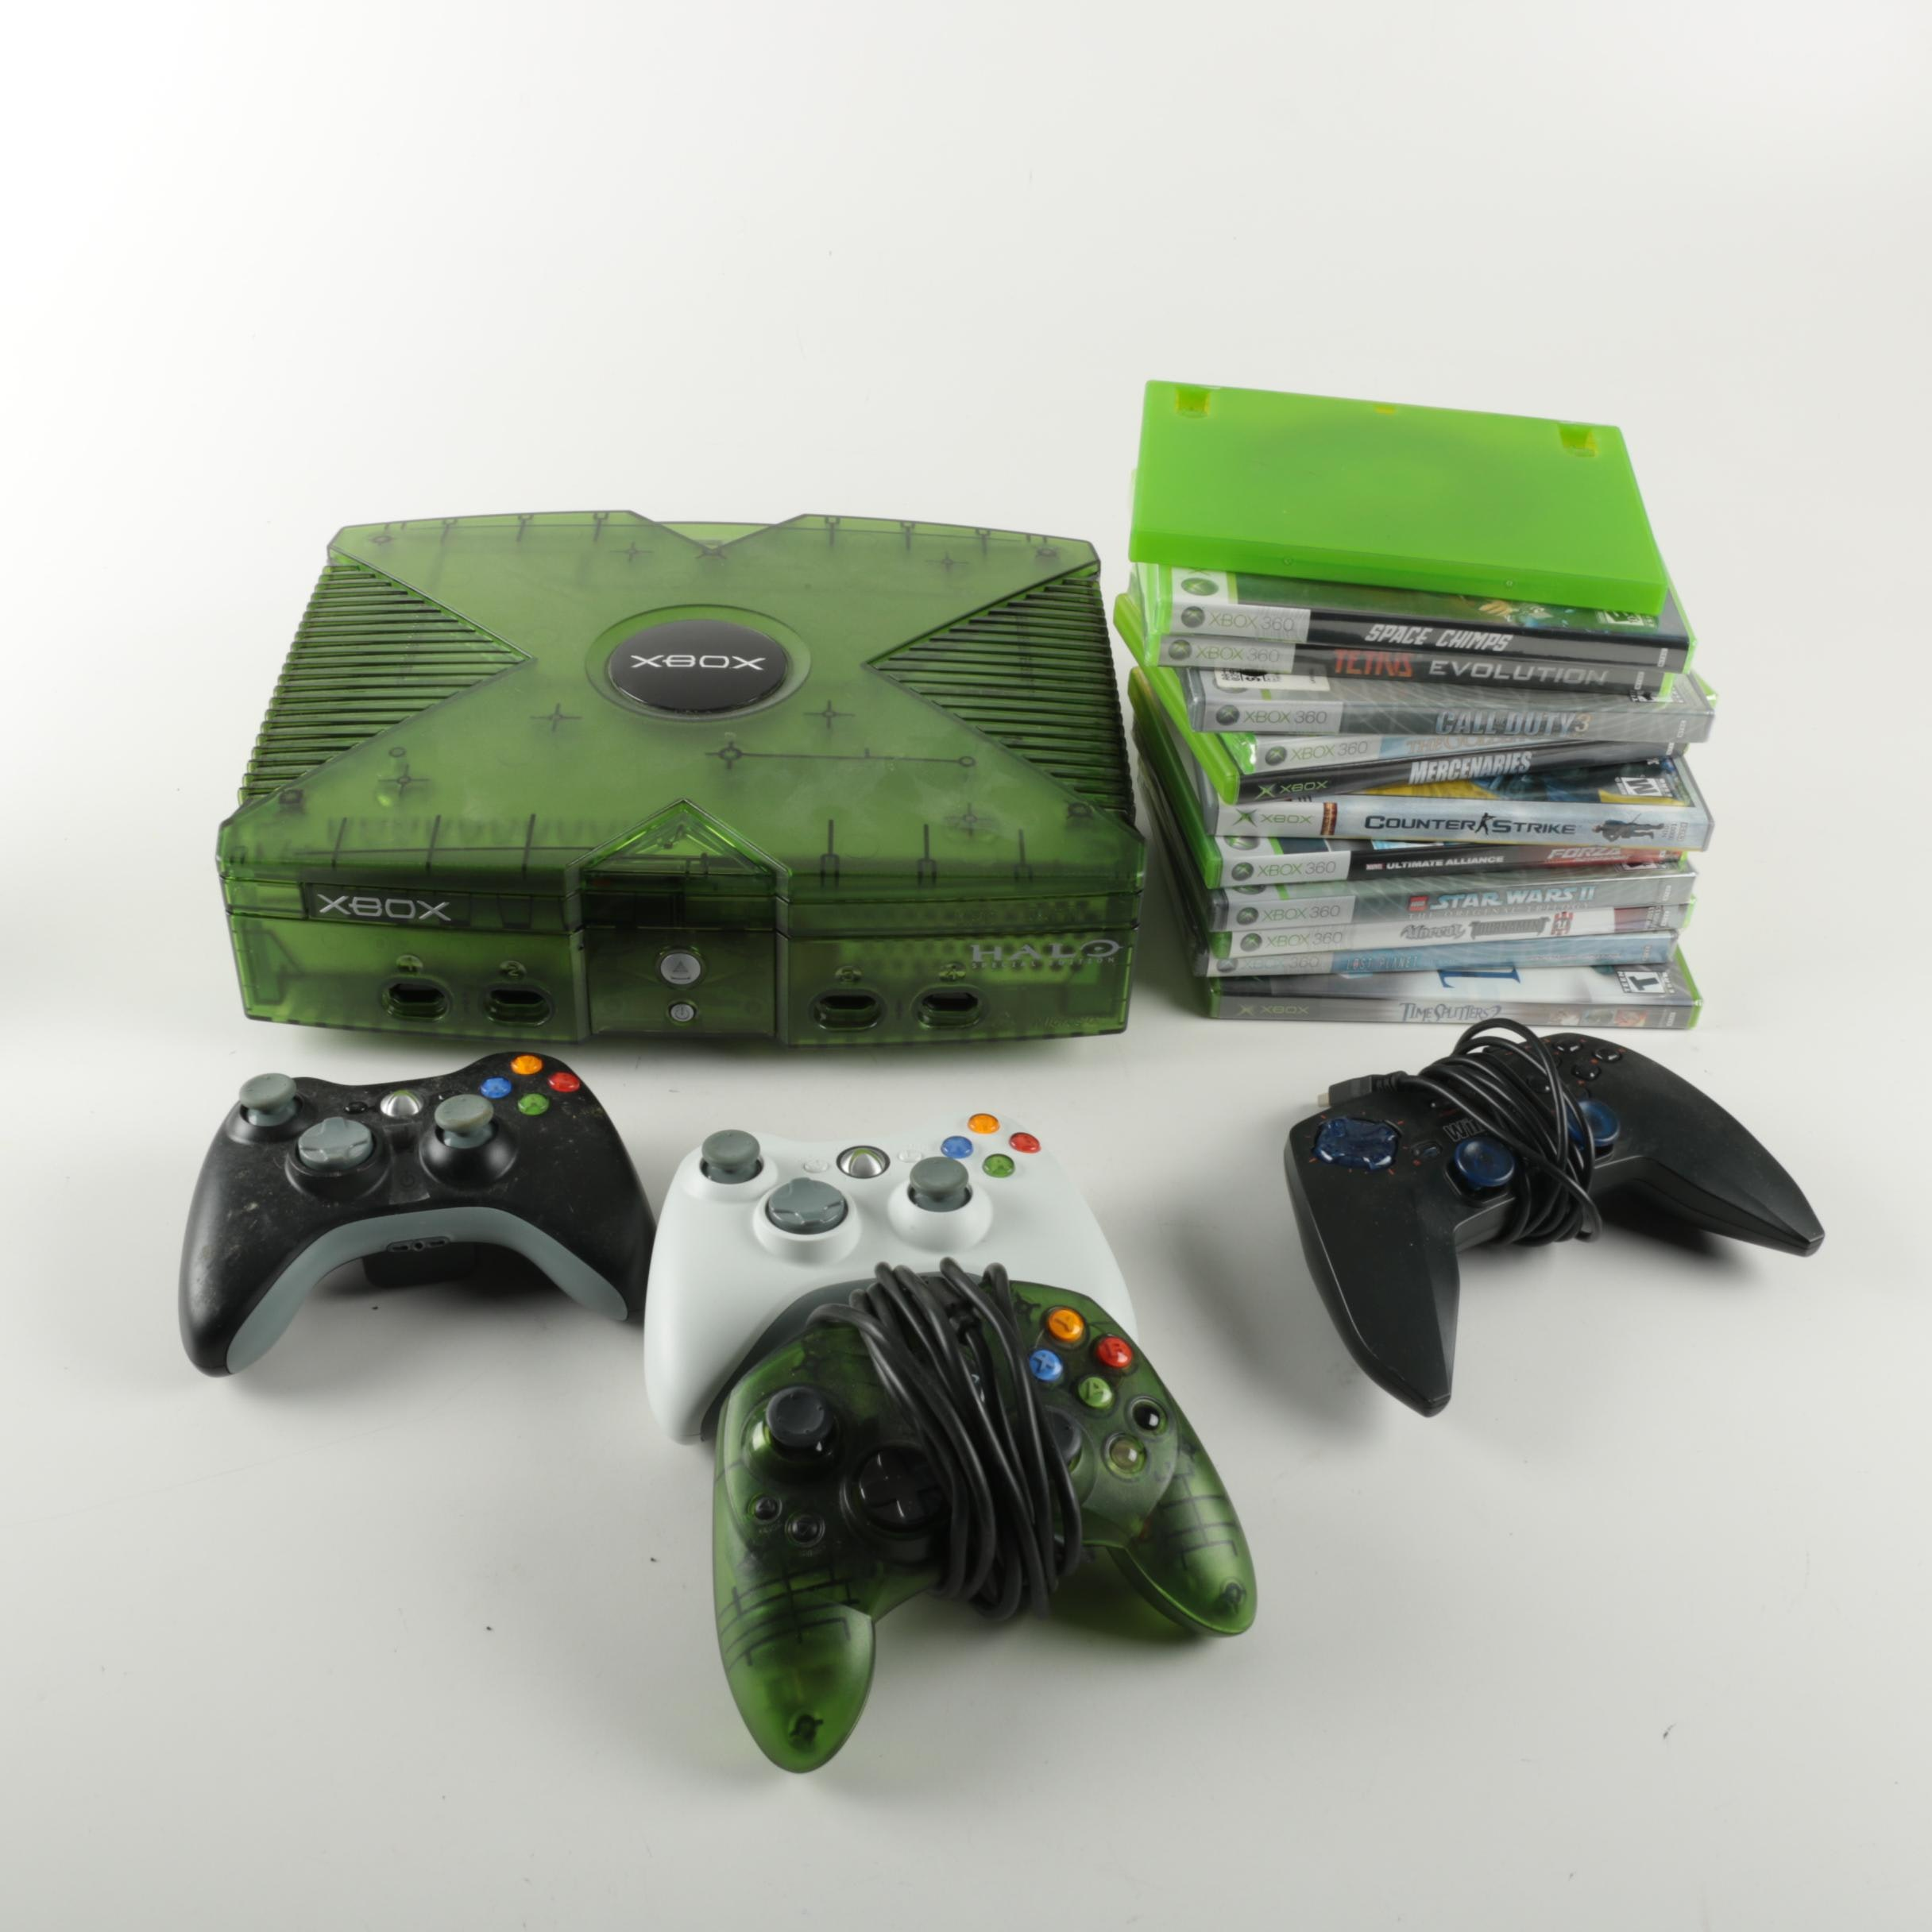 X Box Console, Controllers and Games